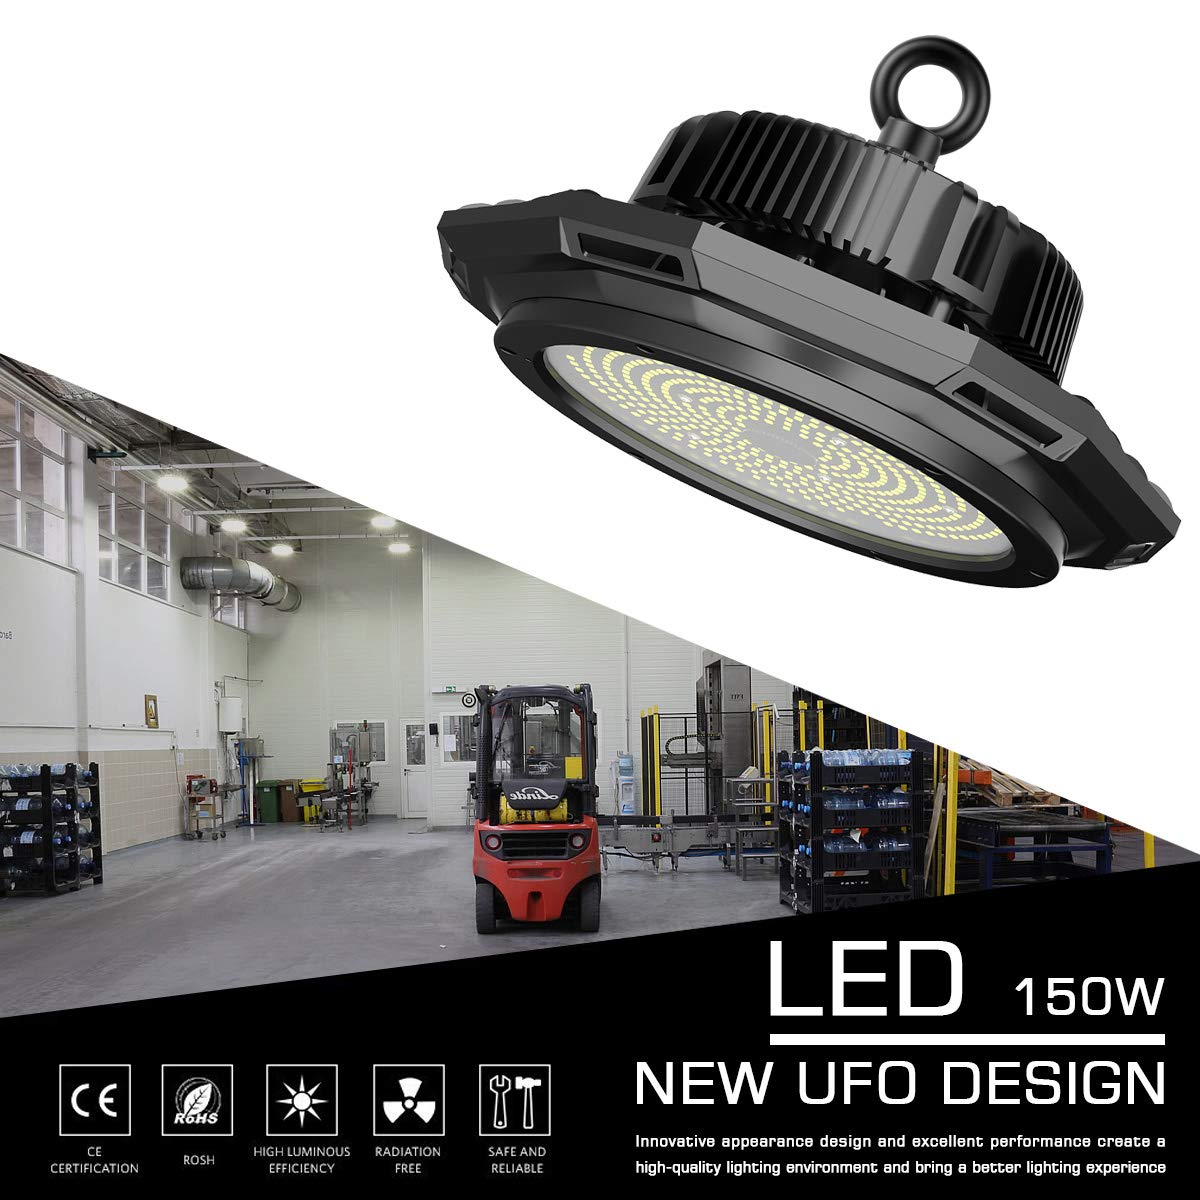 Abodong High Bay LED Light Fixture 150W 19500LM 5700K Outddor Lighting Alternative to 600W HPS/MH with 110-277V 2M AC Power Cord UL/DLC Approved IP 65 (150W with 2M PowerCord)